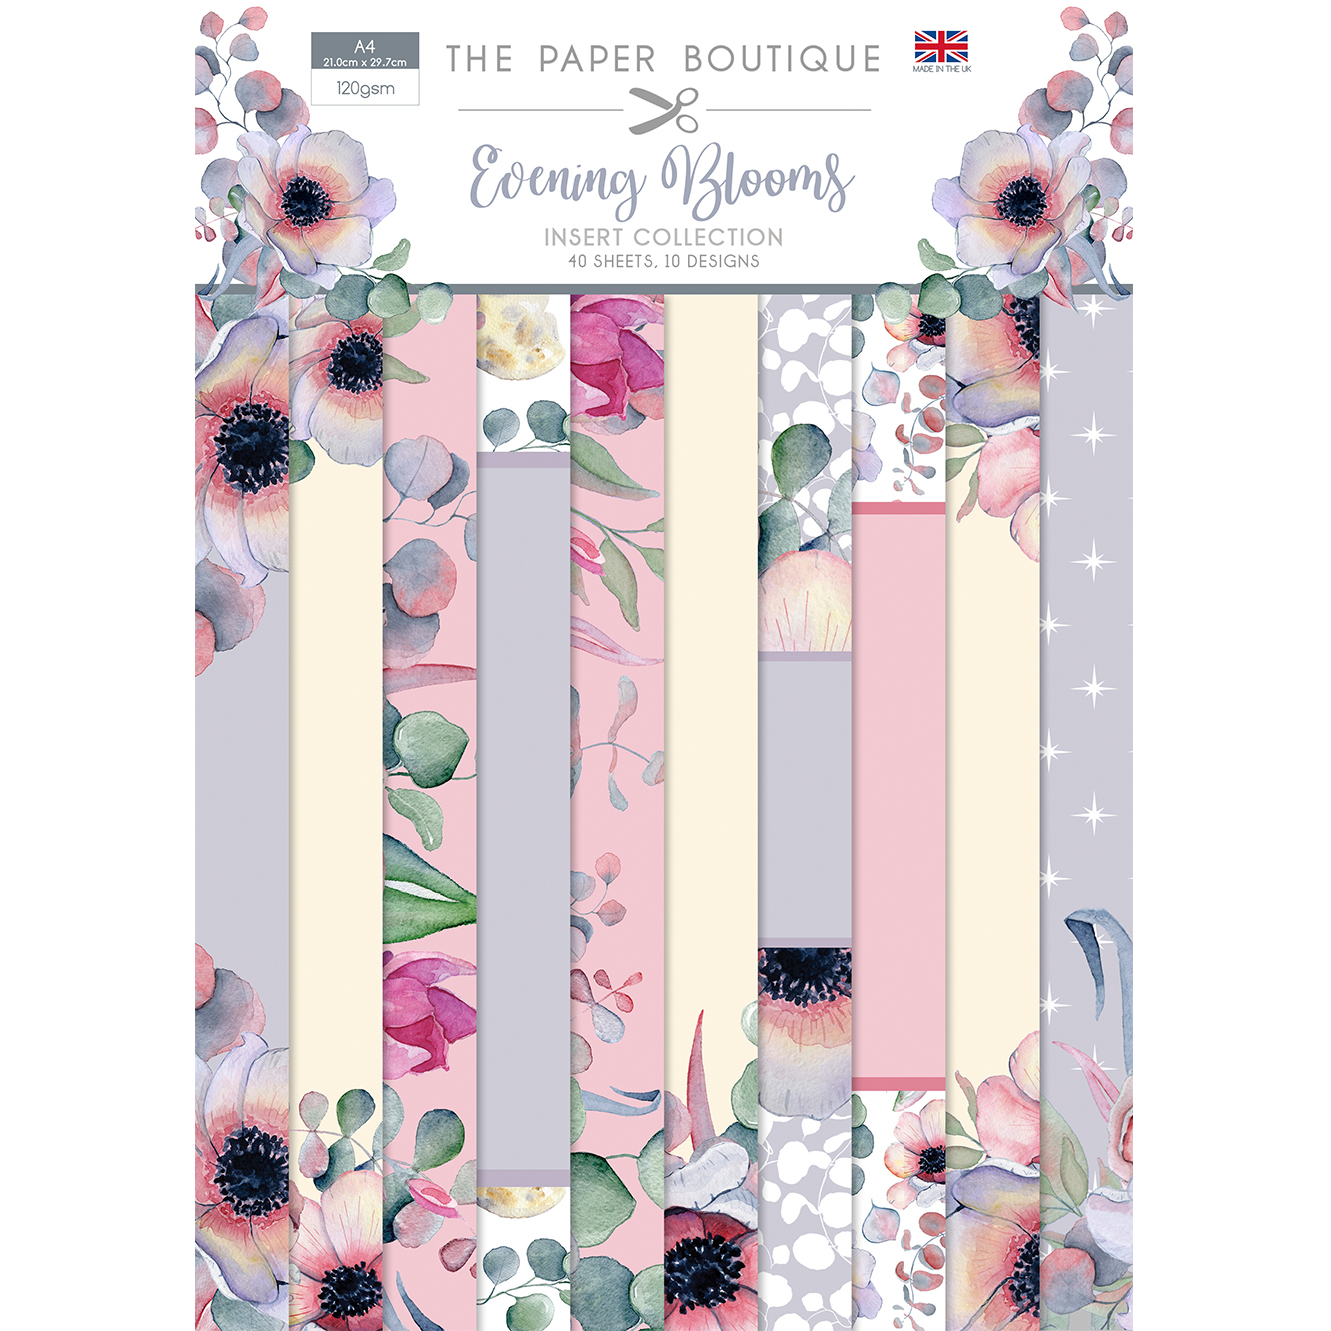 The Paper Boutique Evening Blooms Insert Collection